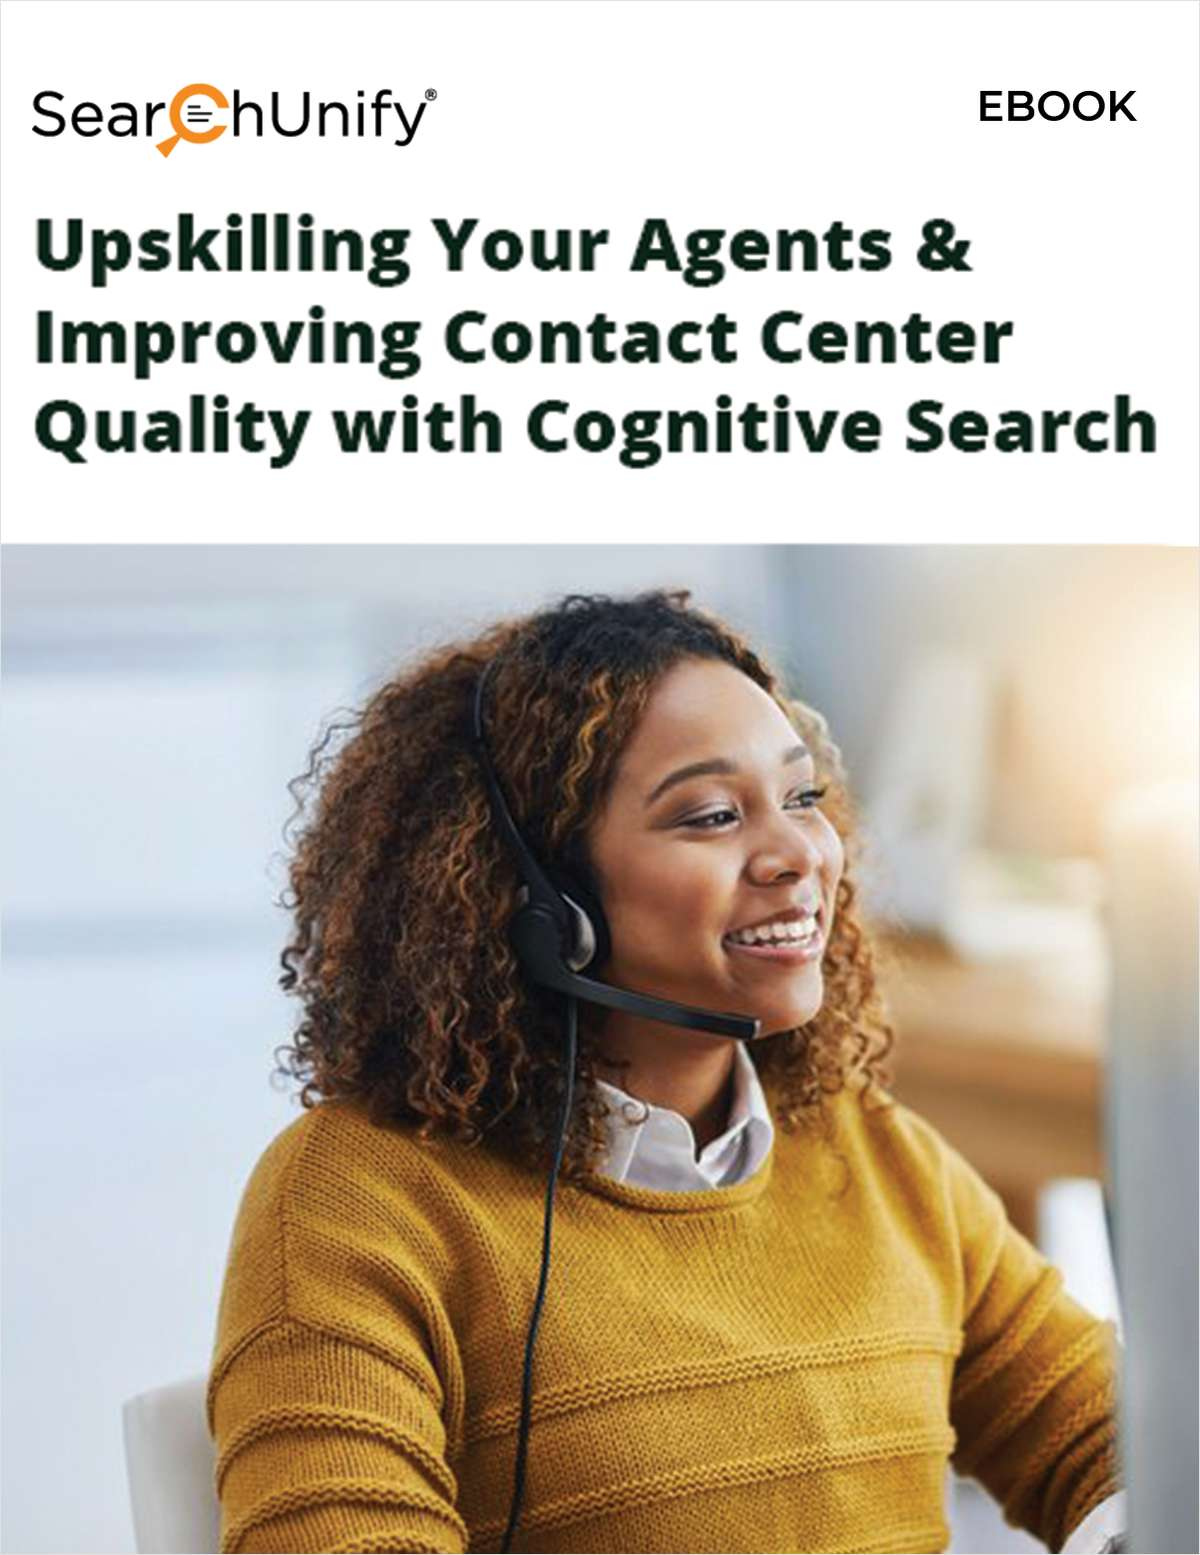 Upskilling Your Agents & Improving Contact Center Quality with Cognitive Search